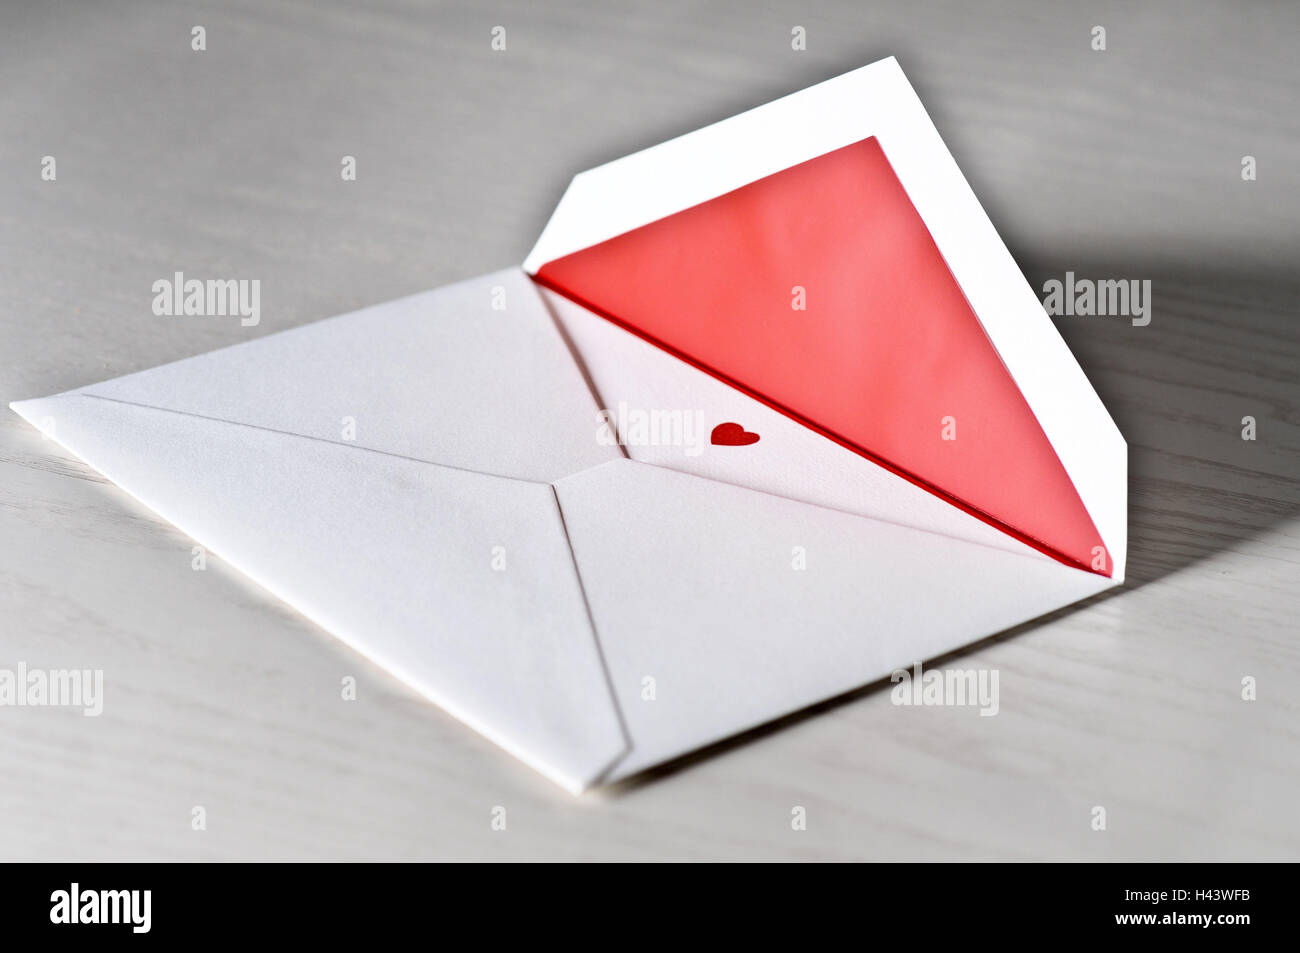 Envelope Letter Heart Copy Space Envelope Post Envelope Love